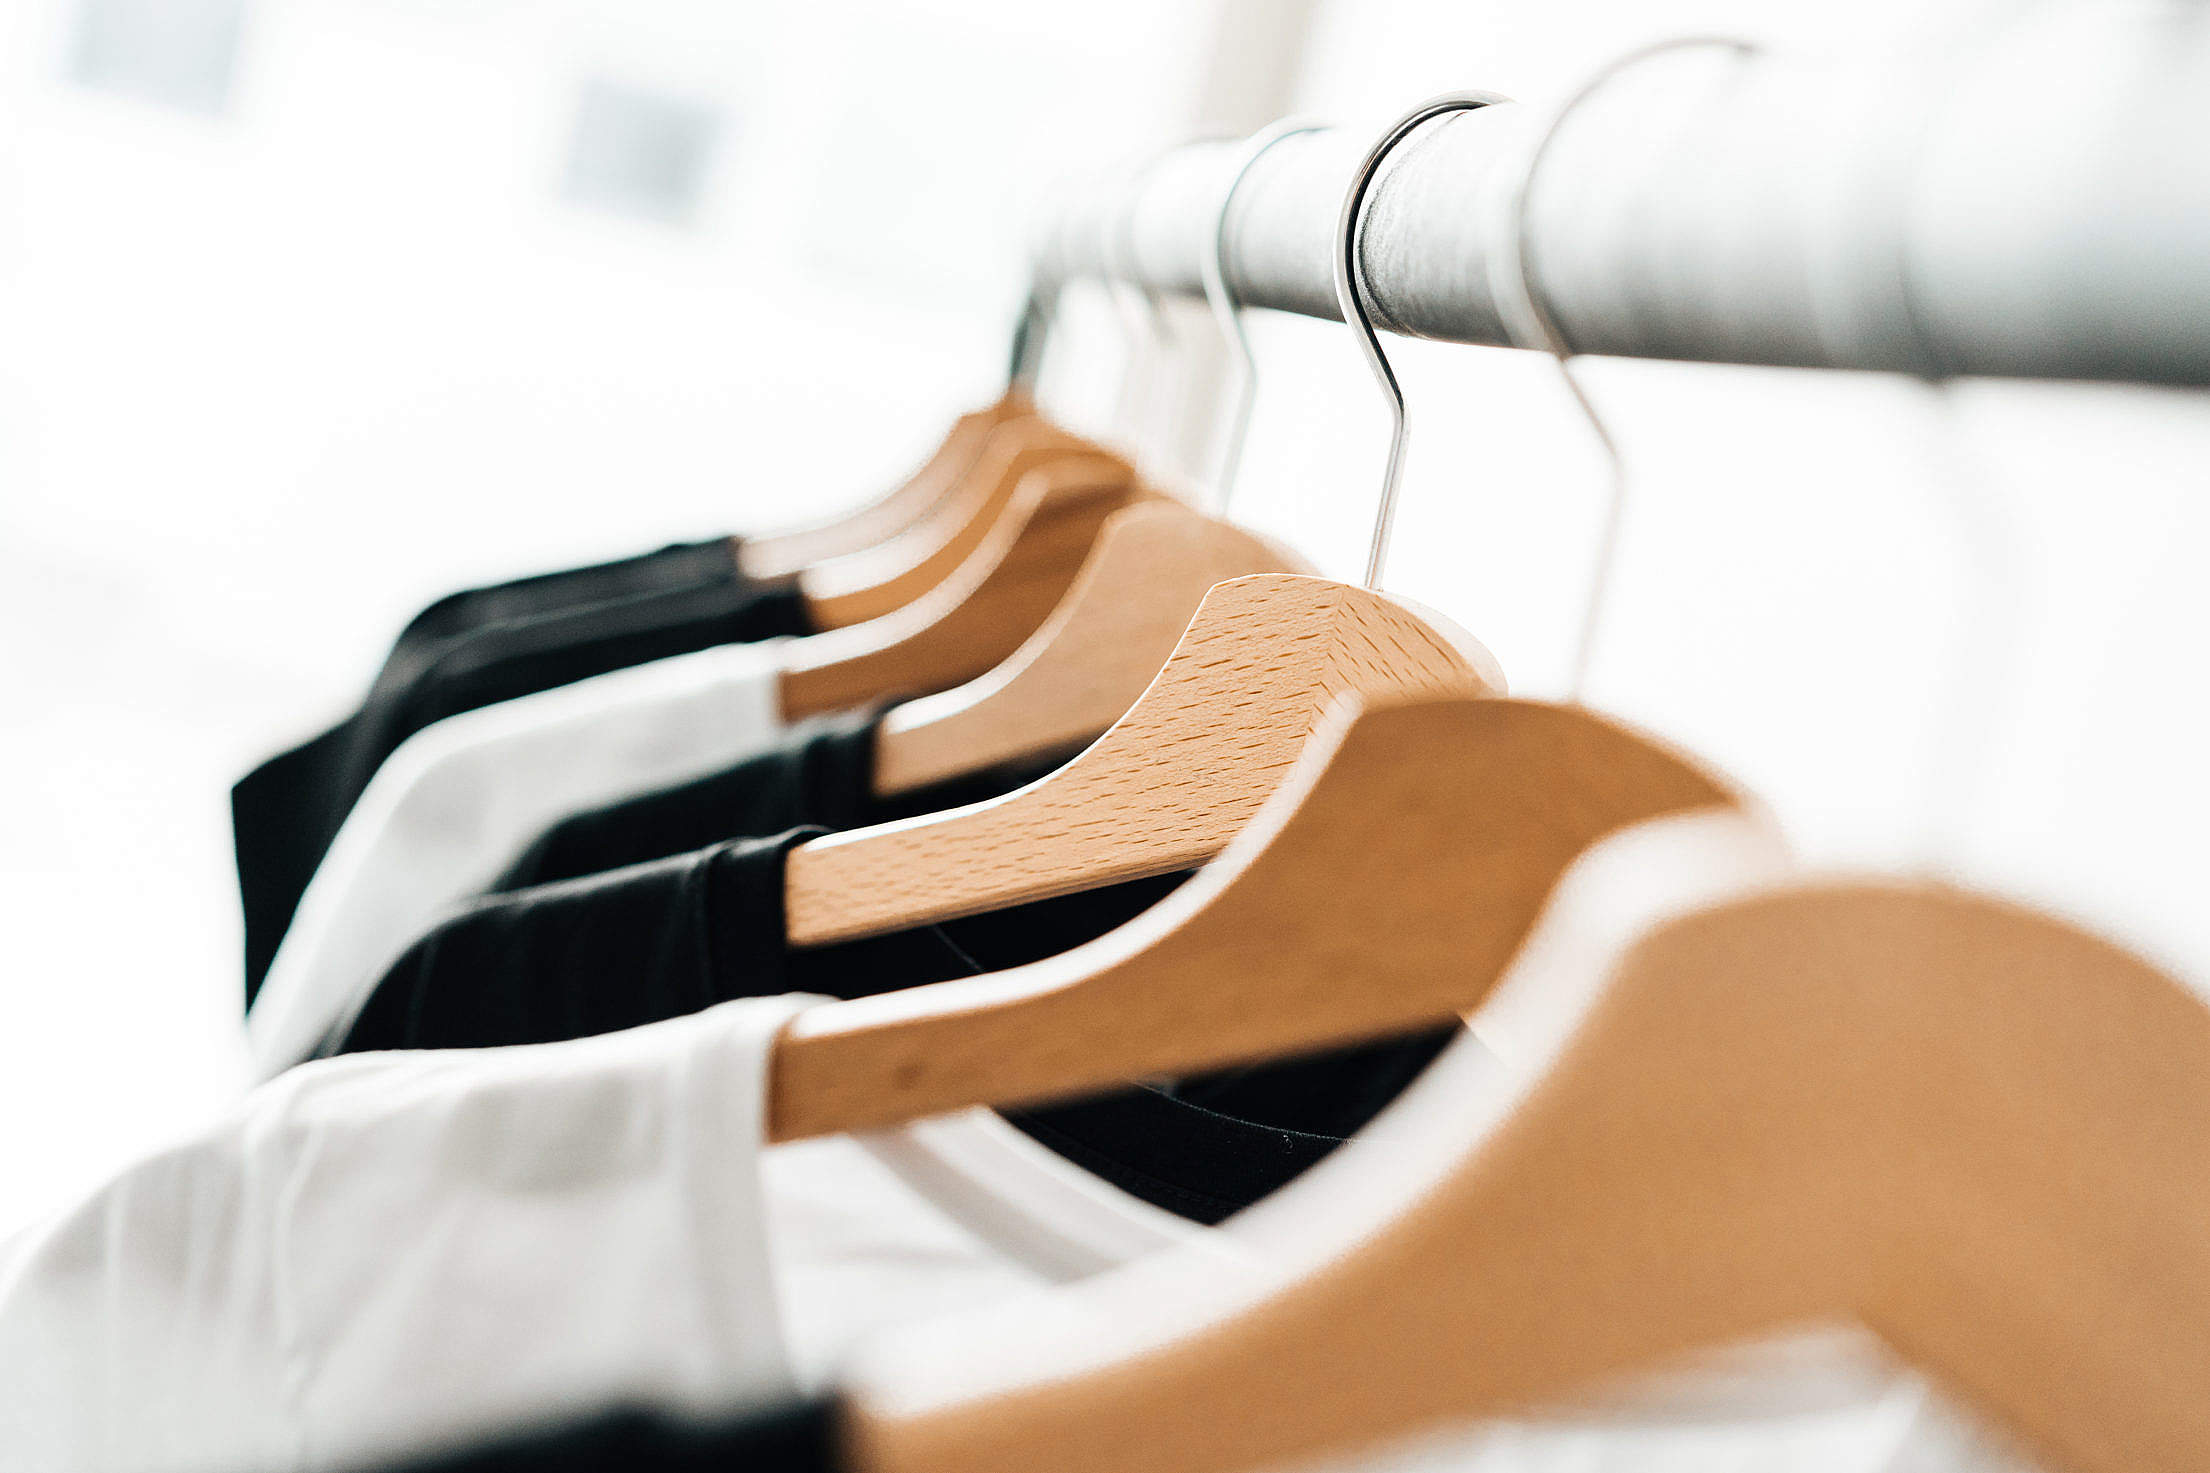 Wooden T-Shirt Hangers in Fashion Apparel Store Free Stock Photo